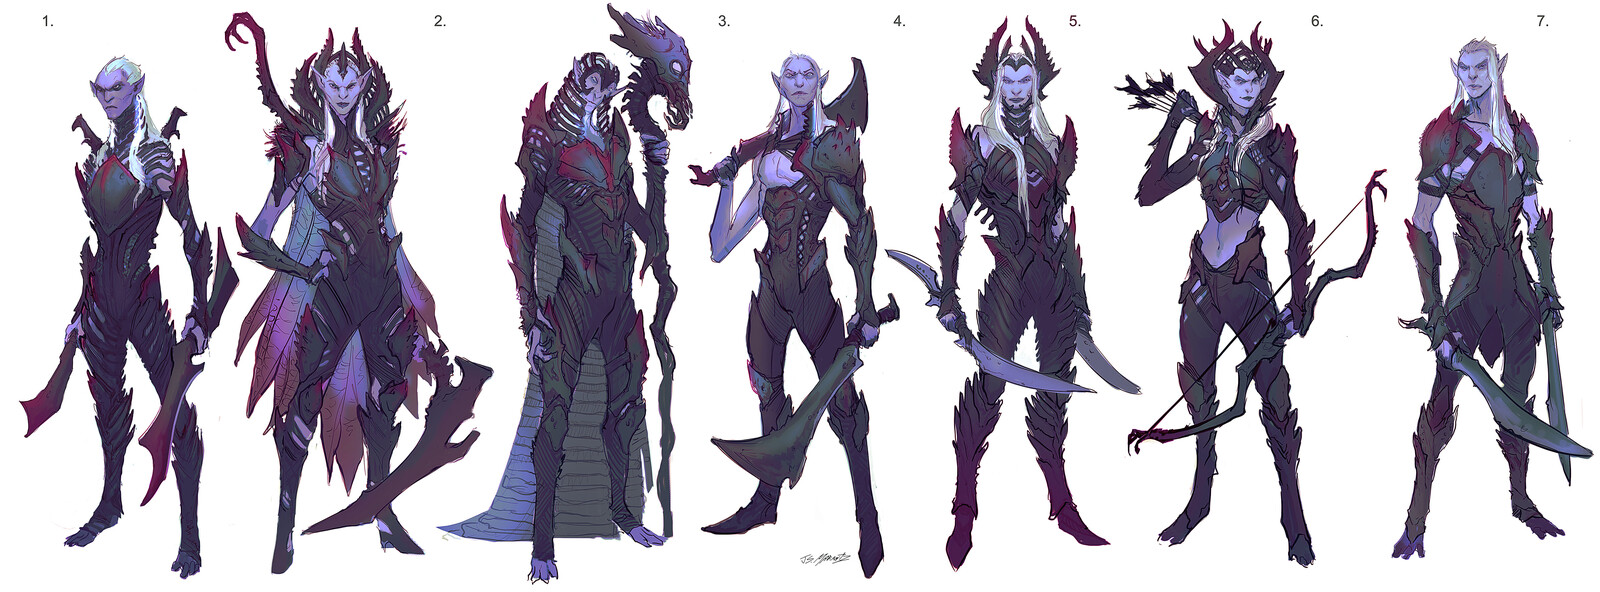 Dark Elves Designs for Canceled Game